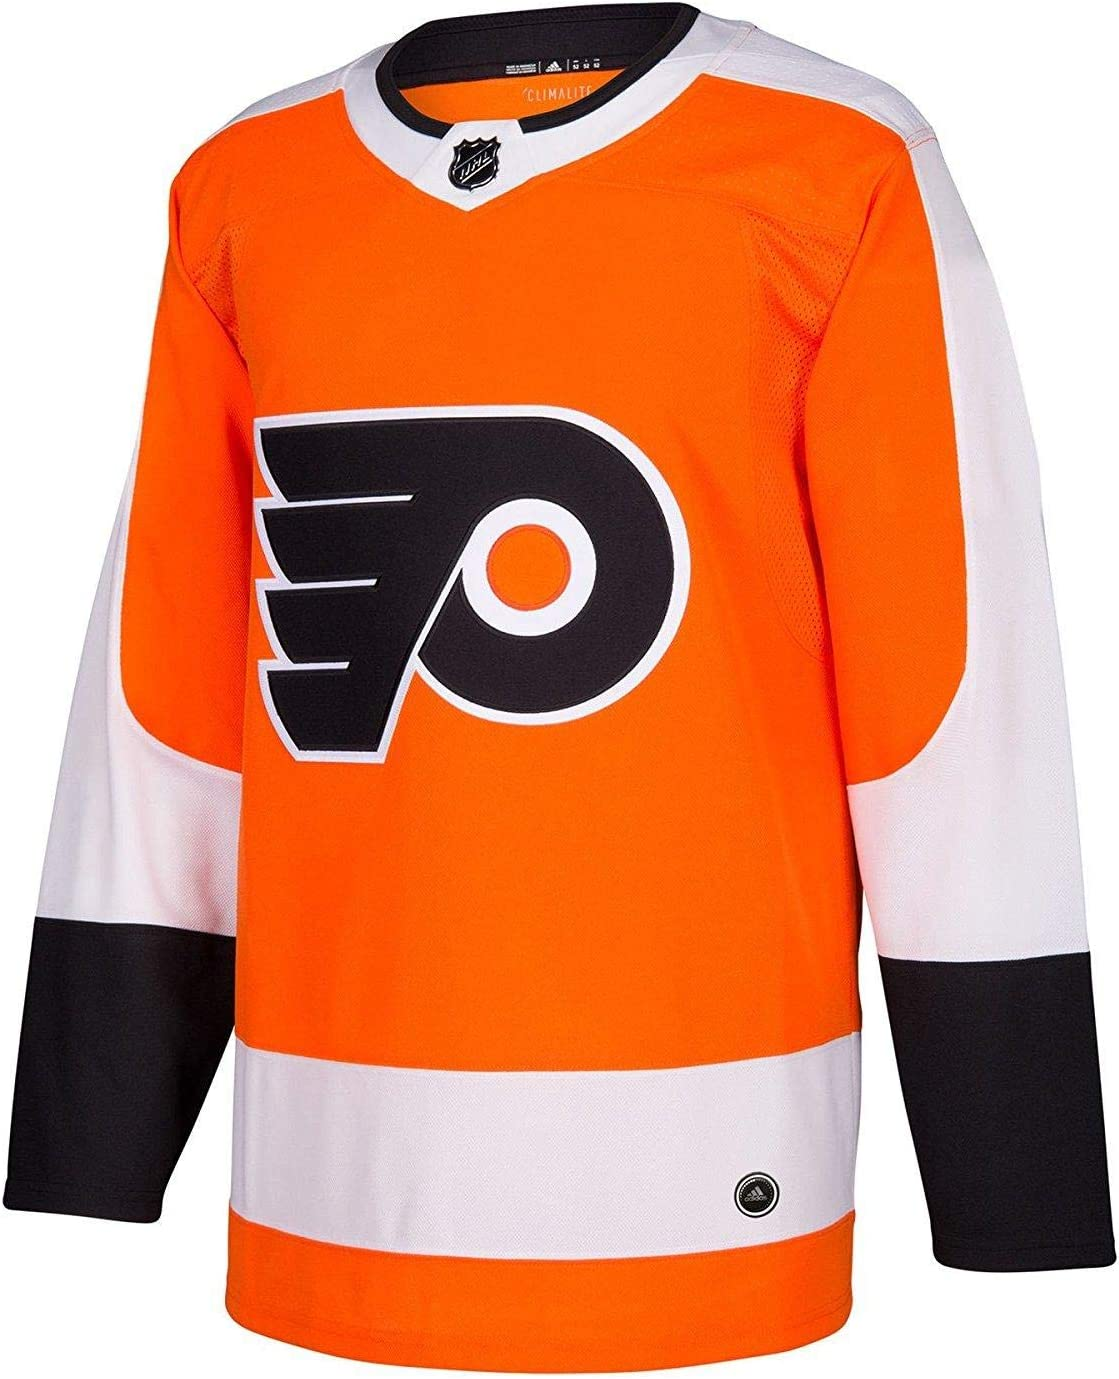 adidas Flyers Authentic Spring new work one after another 252JA512EZ-FLYERS Jersey 67% OFF of fixed price